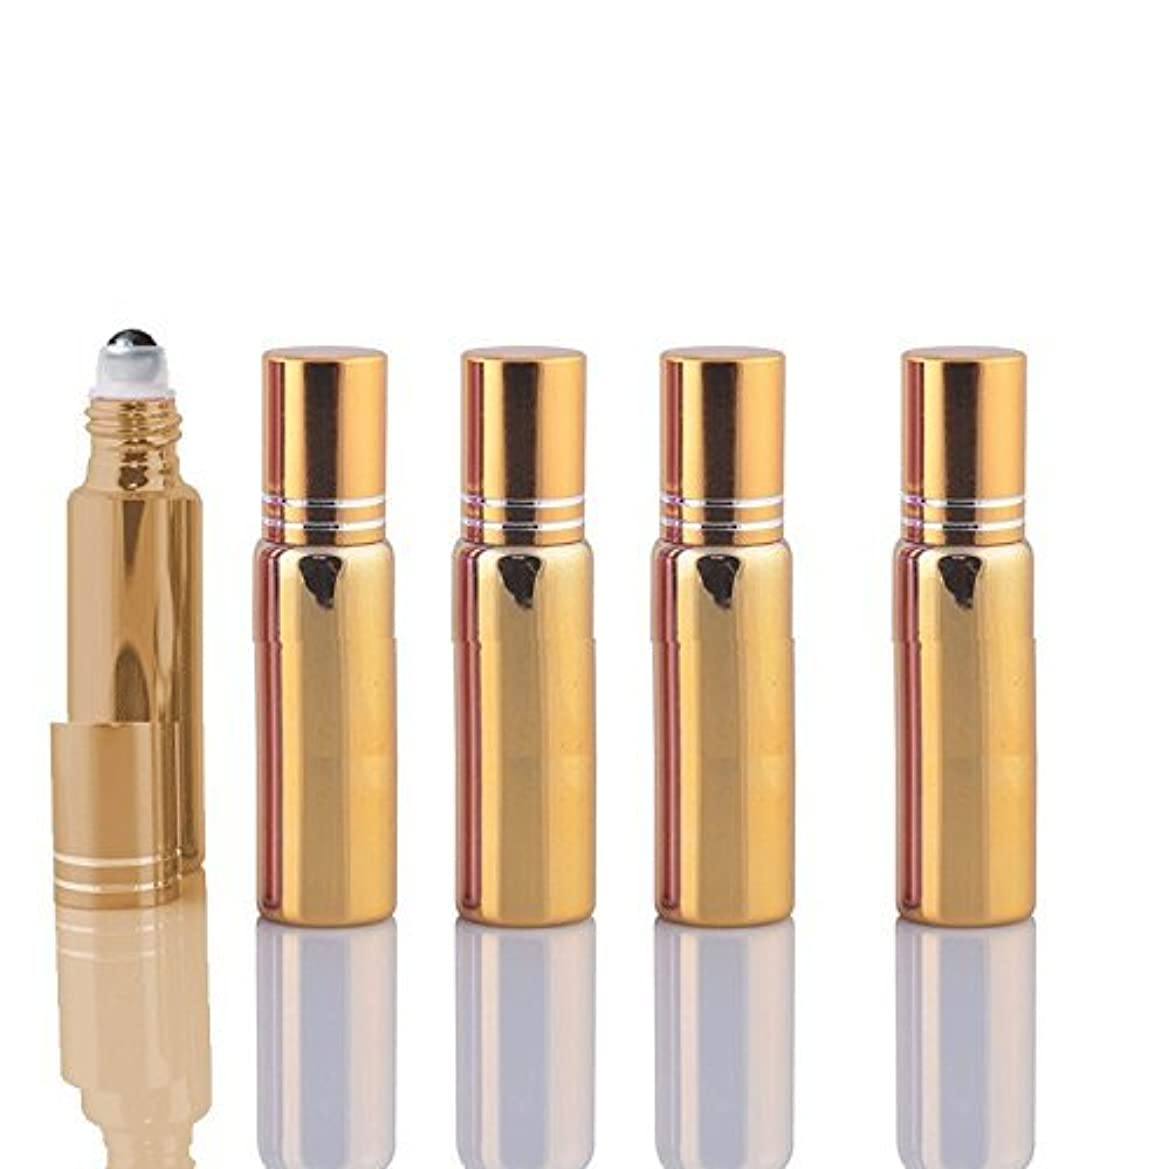 推測するに関して各10 Sets Colored 5ml UV Coated Glass Roller Ball Refillable Rollon Bottles Grand Parfums with Stainless Steel Rollers for Essential Oil, Serums, Fragrance (Gold) [並行輸入品]